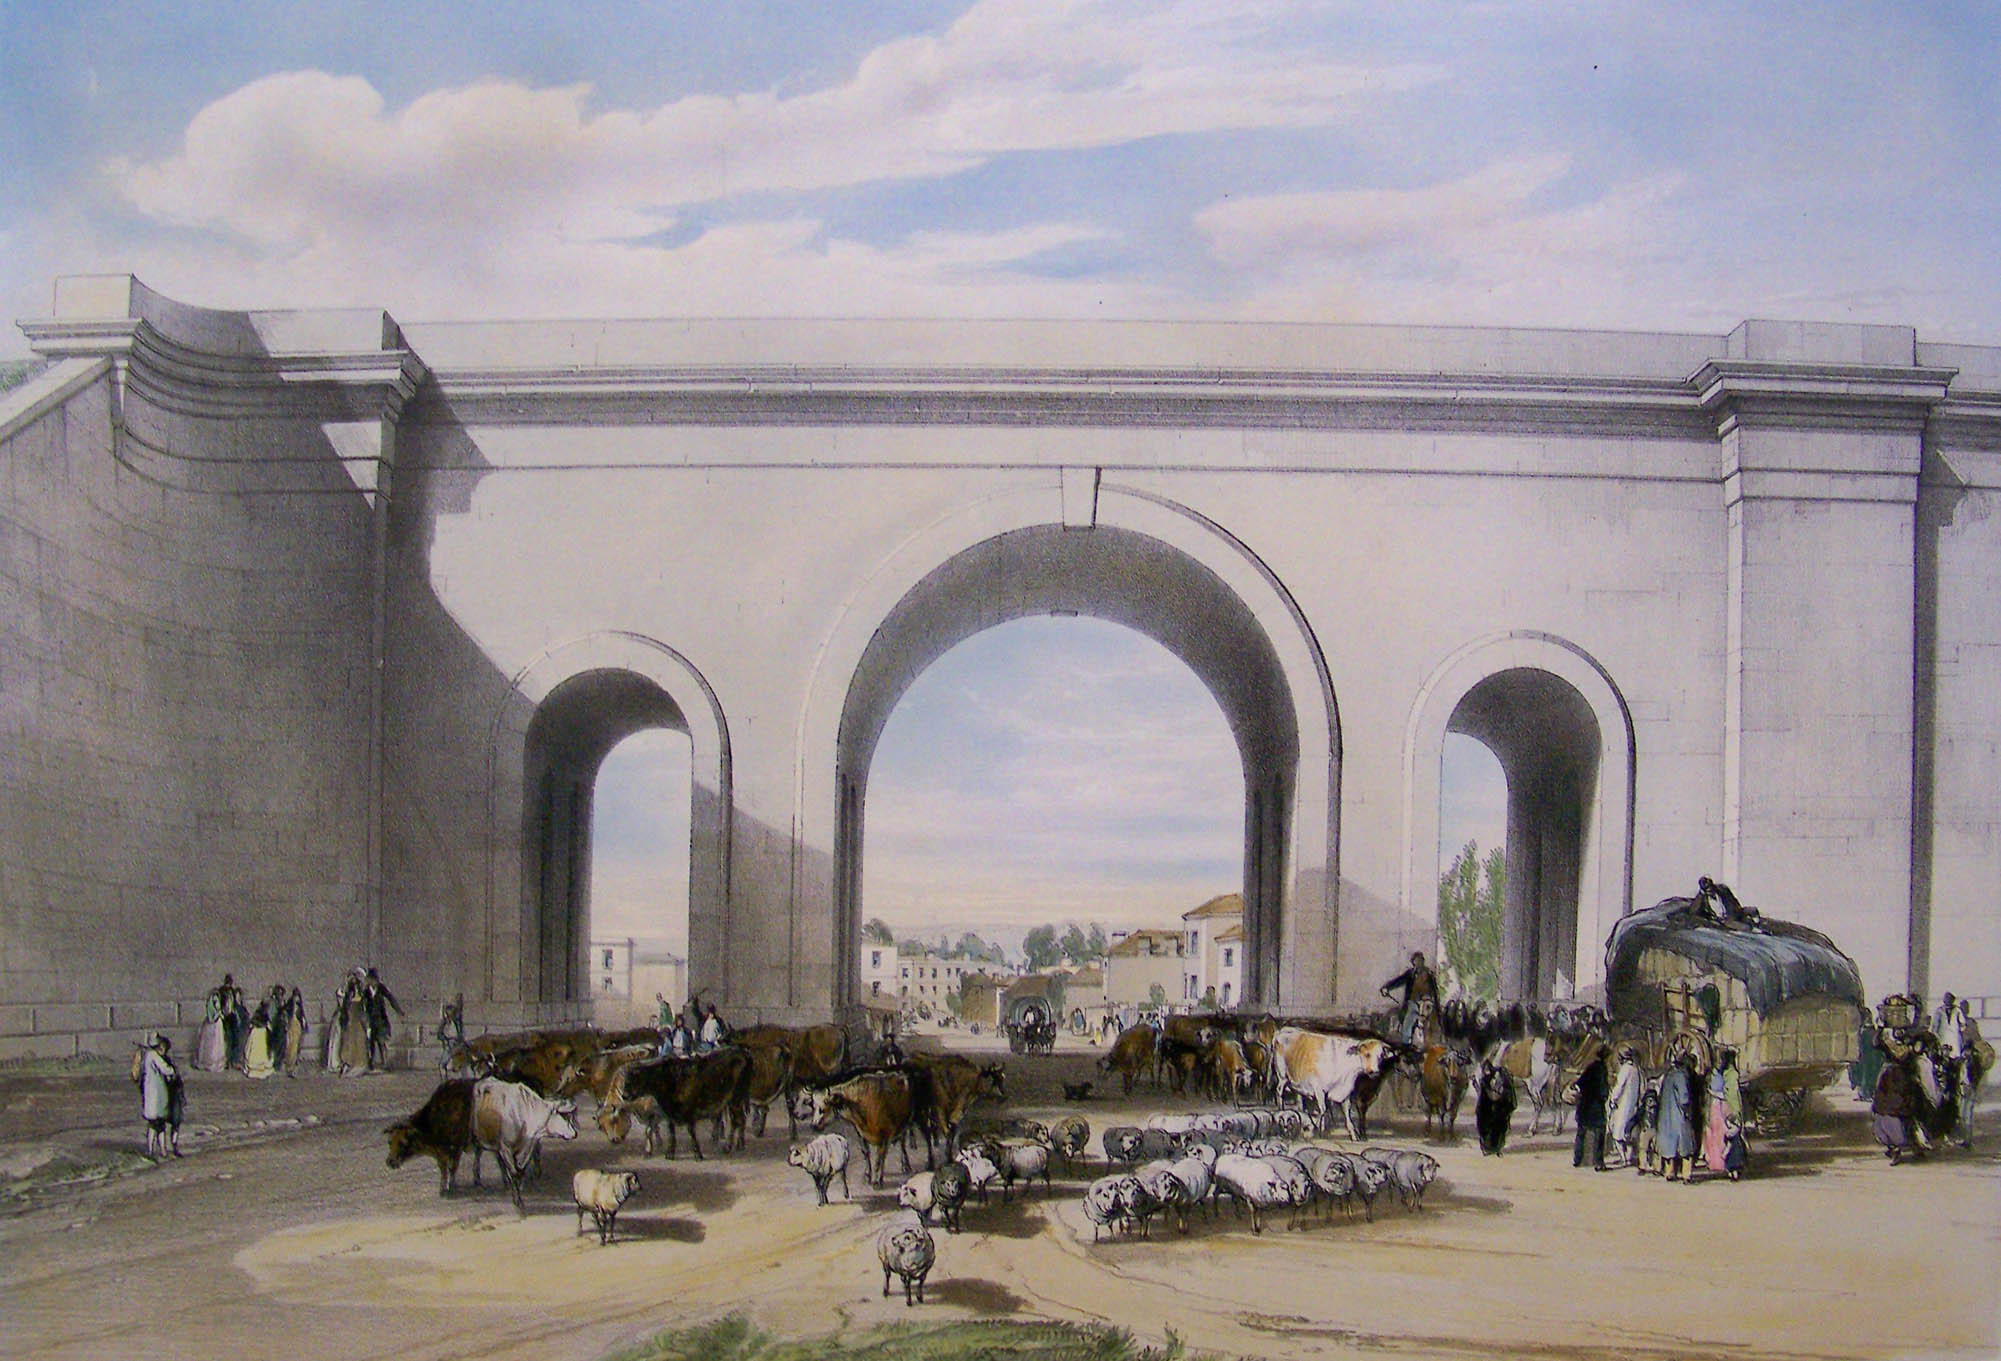 A colour etching of the arches, drawn from New Road looking through the arches towards the High Street. There is alot of activity below the arches, with livestock, people and wagons passing through below.